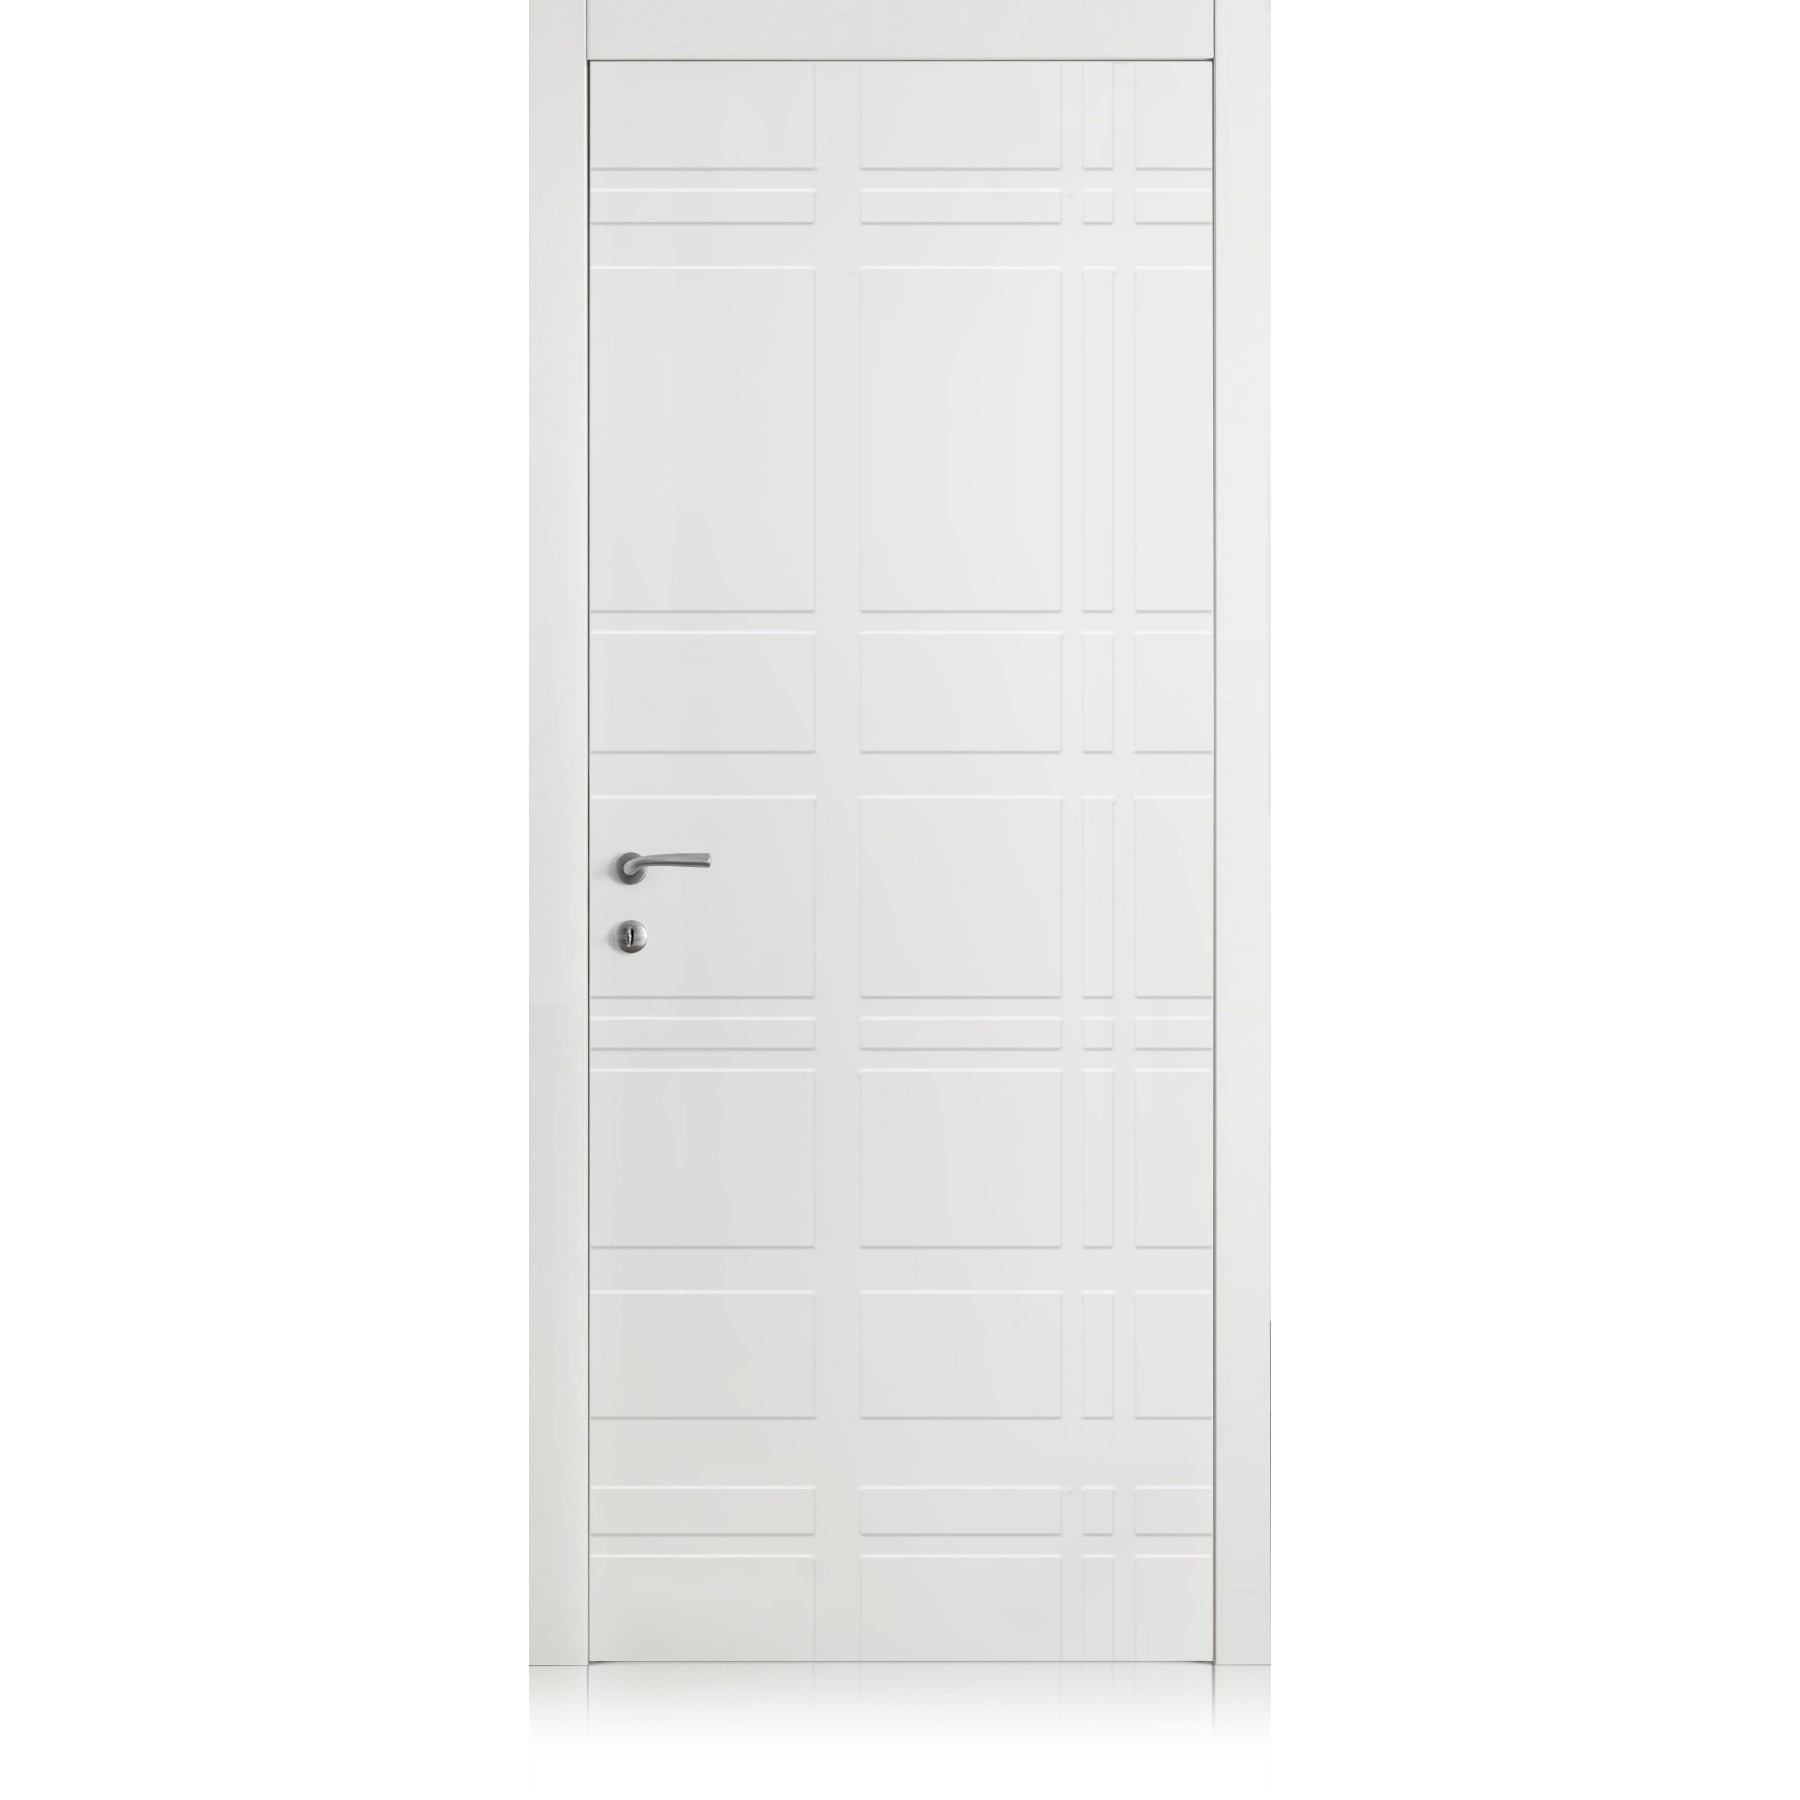 Yncisa Tartan Bianco Optical Laccato ULTRAopaco door